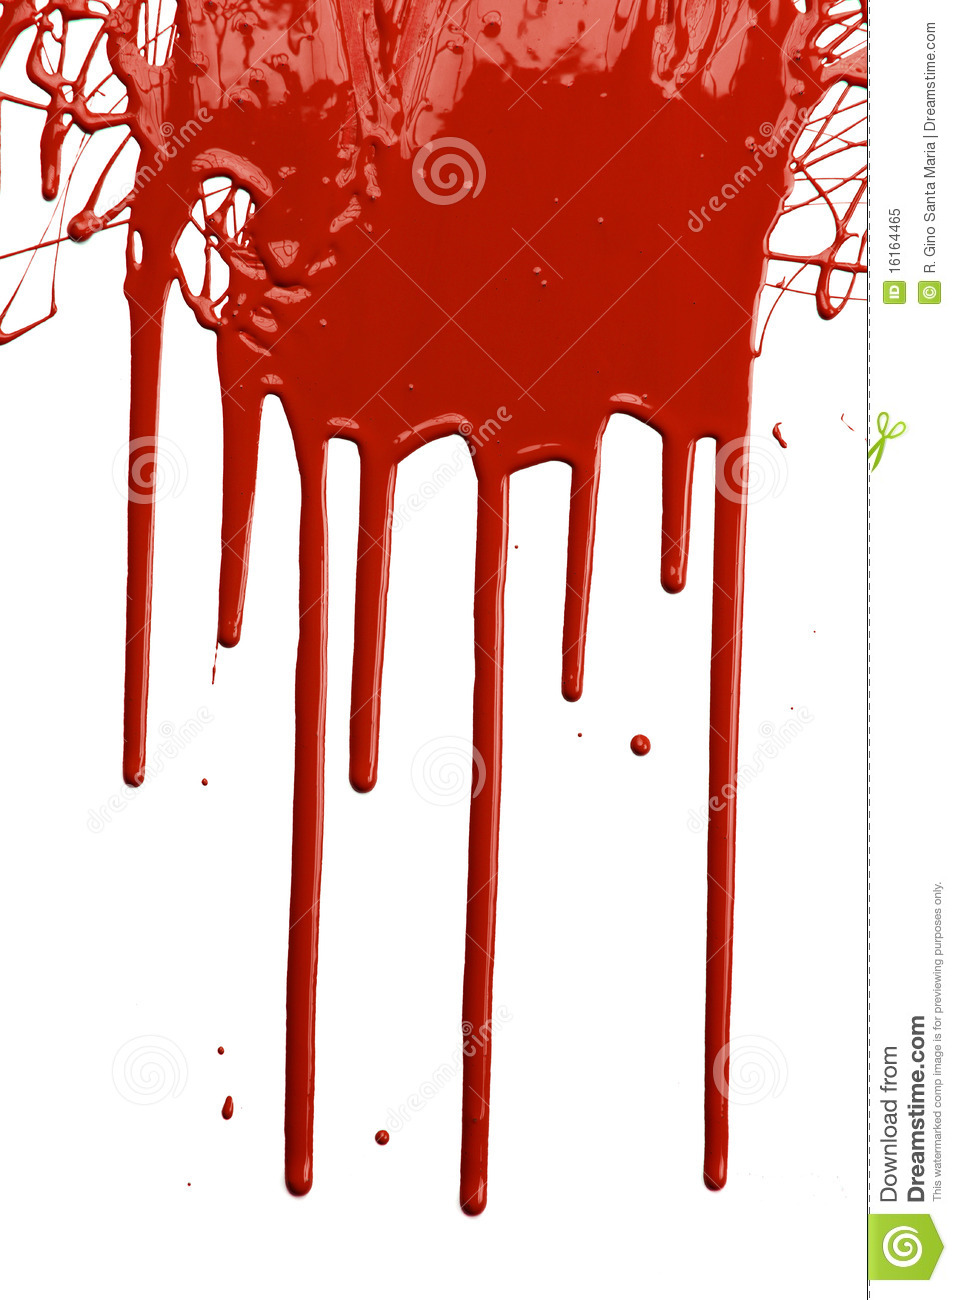 Red Paint Dripping Royalty Free Stock Photo - Image: 16164465